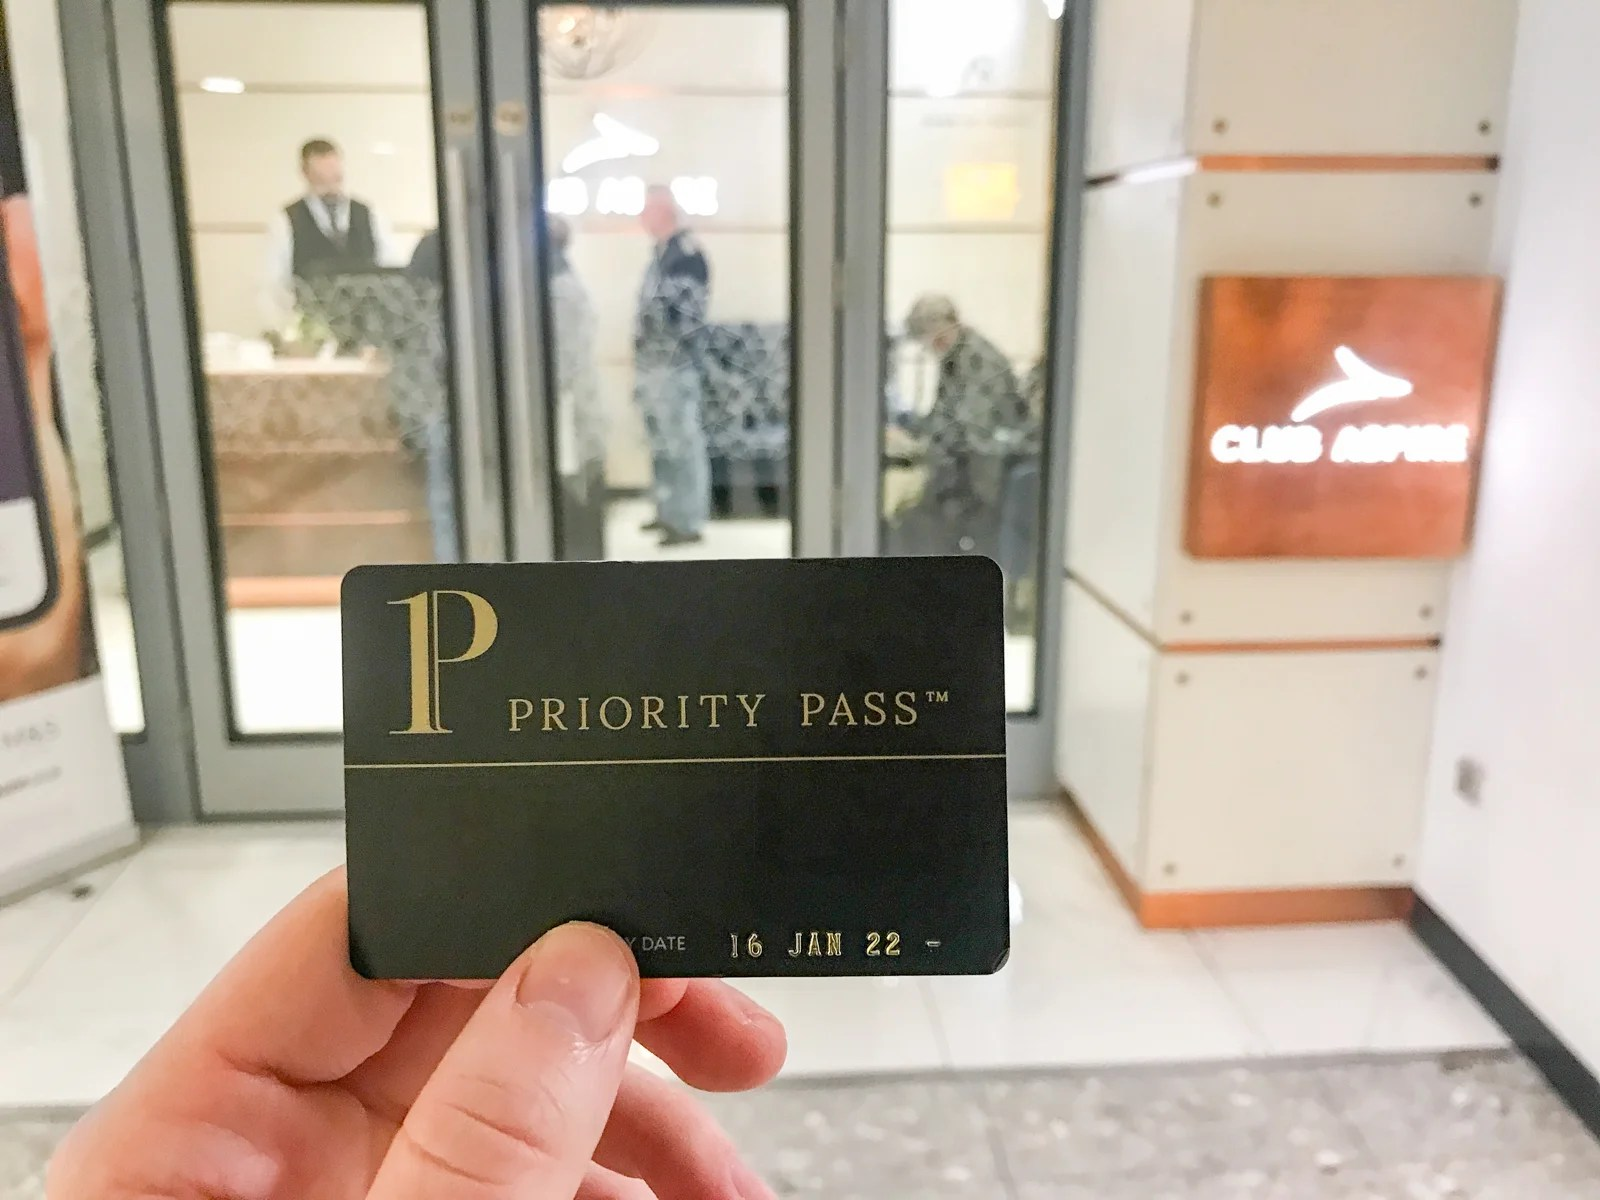 The Best Credit Cards for Priority Pass Lounge Access